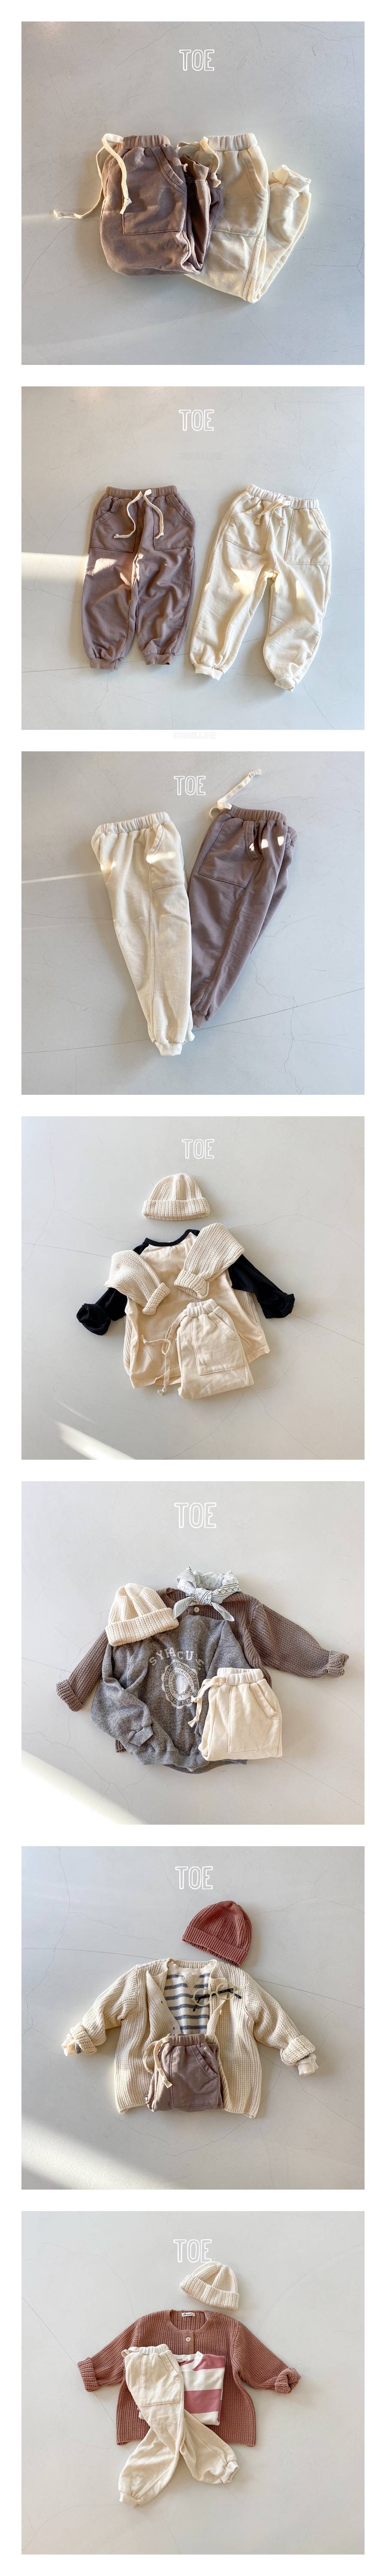 TOE - Korean Children Fashion - #Kfashion4kids - Day Jogger Pants